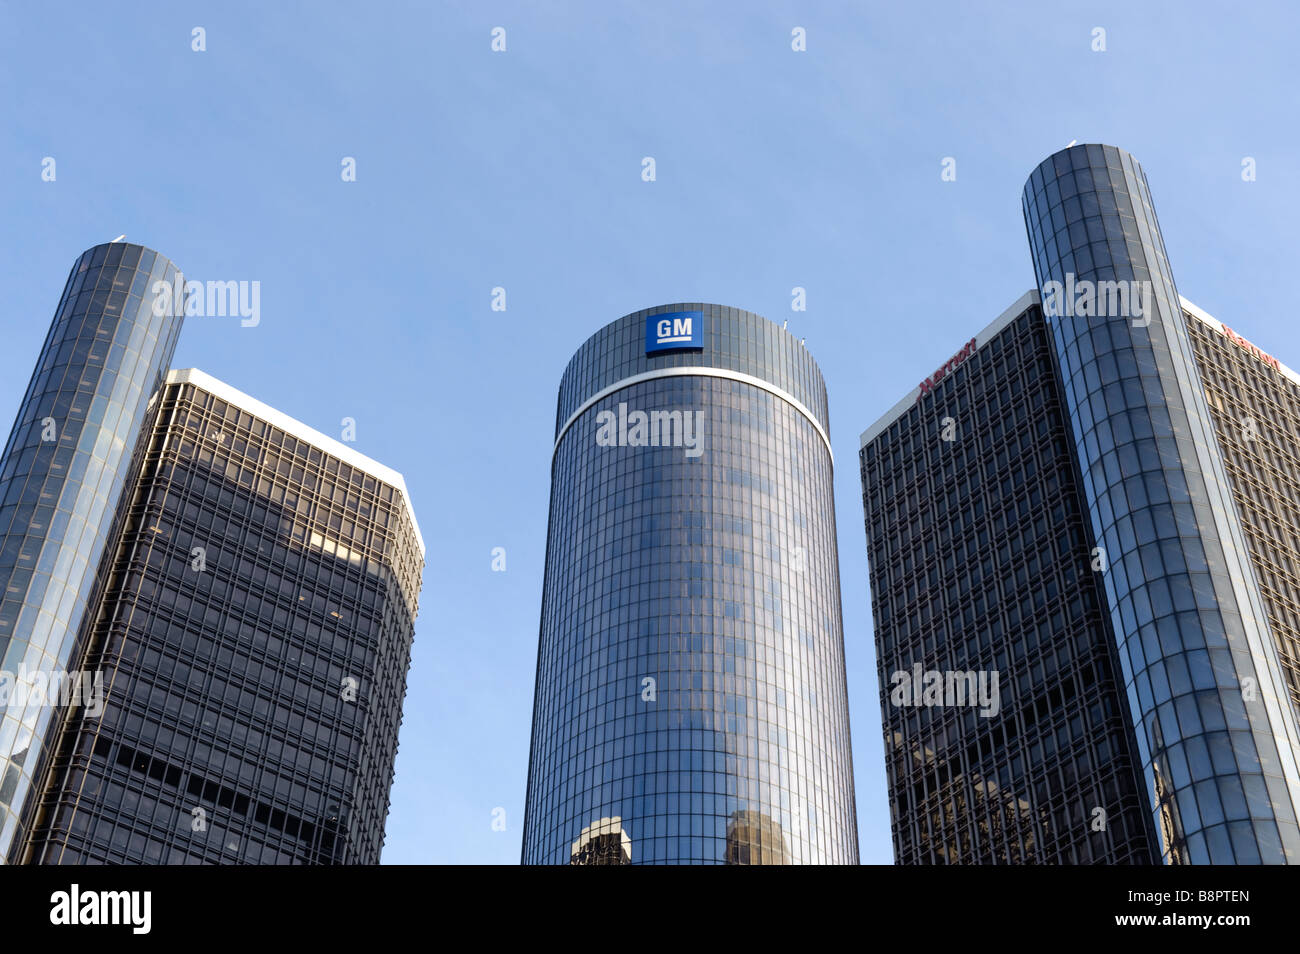 General Motors World Headquarters at the Renaissance Center in Detroit Michigan USA - Stock Image